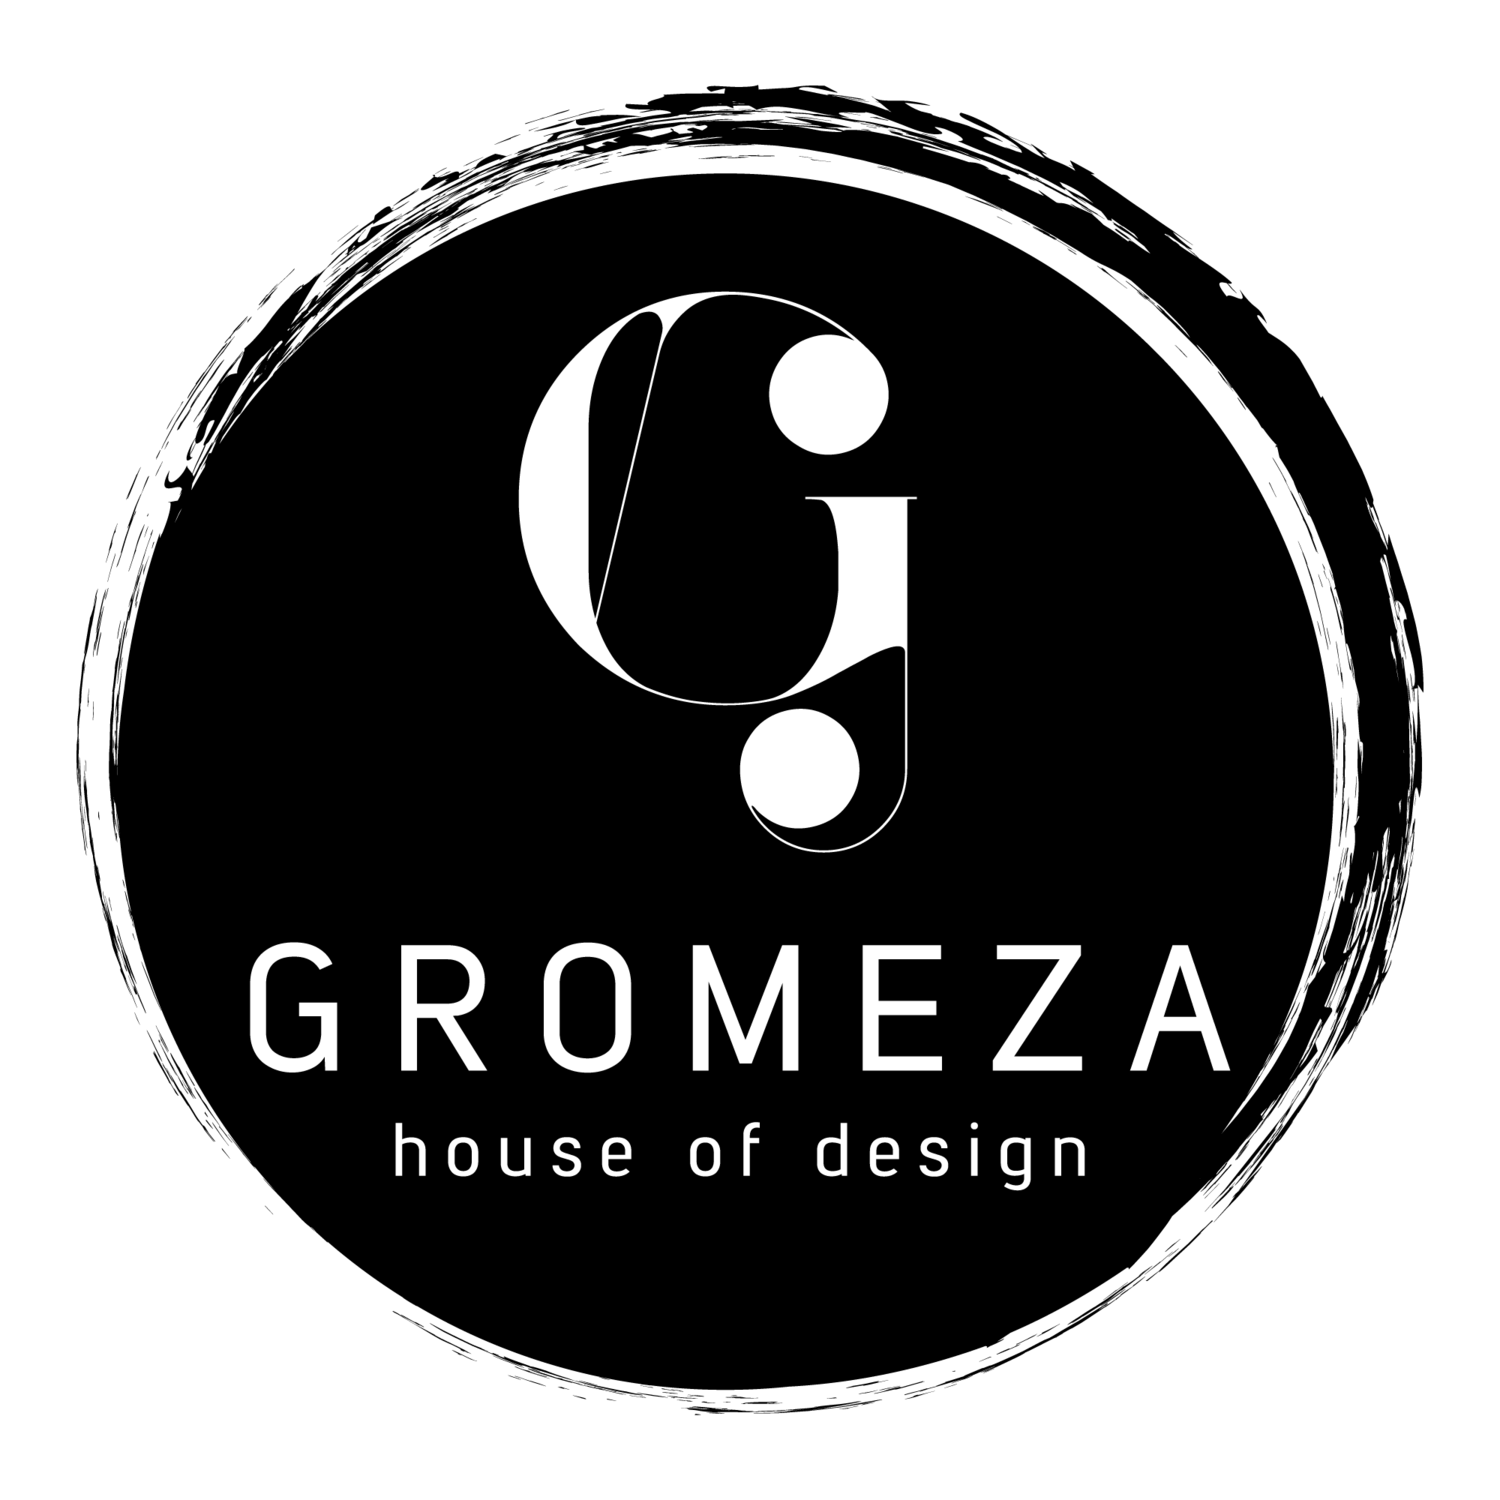 gromeza house of design - Chicago-Based Designer